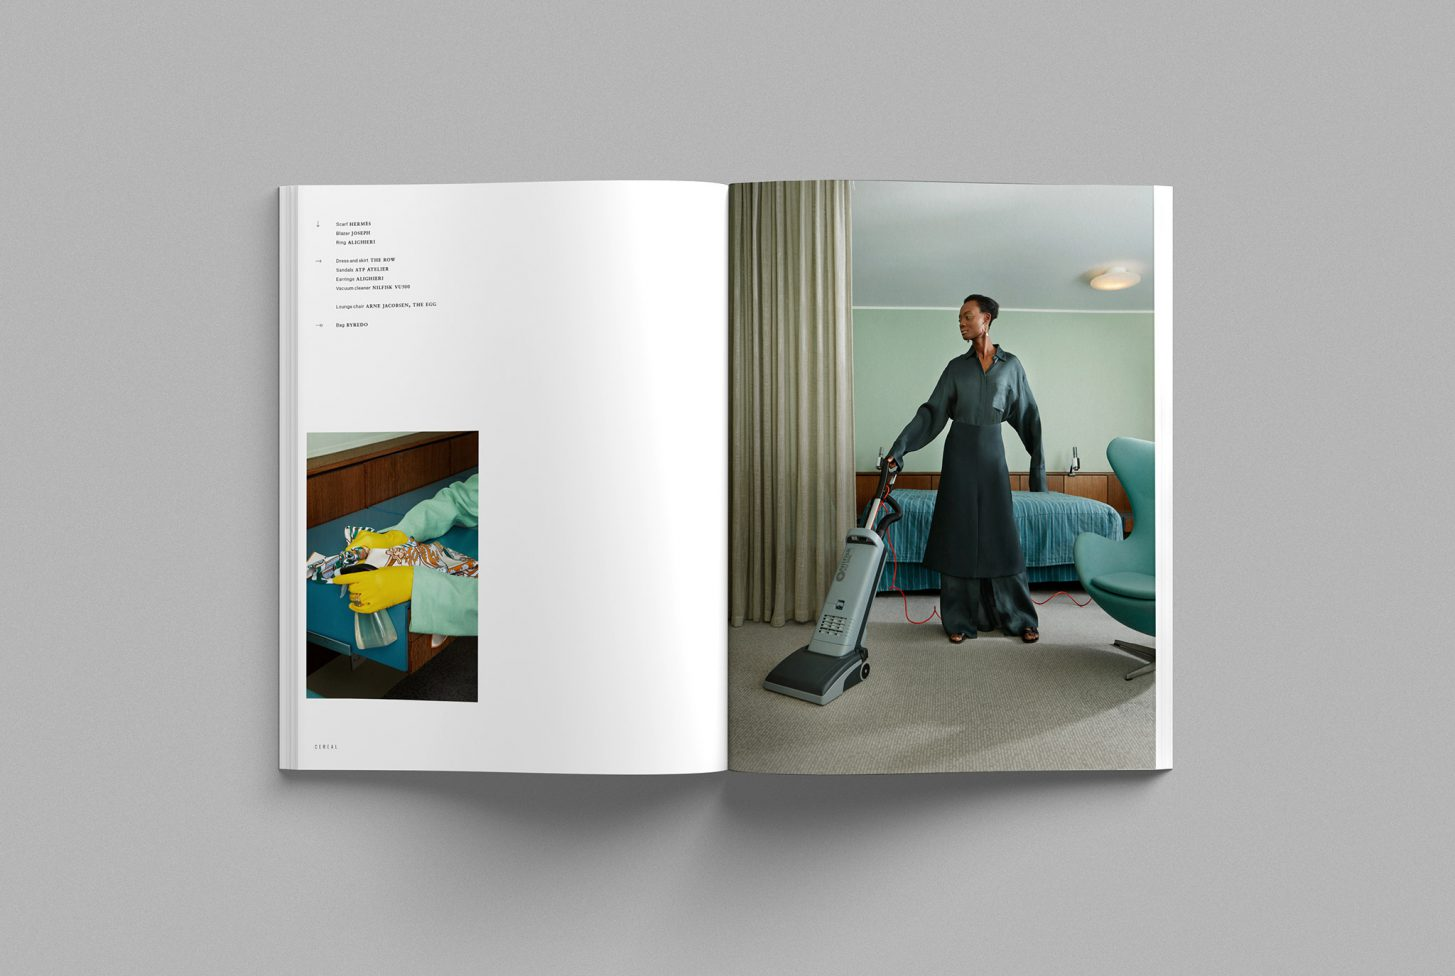 Cereal Magazine Volume 17 - The Library Project